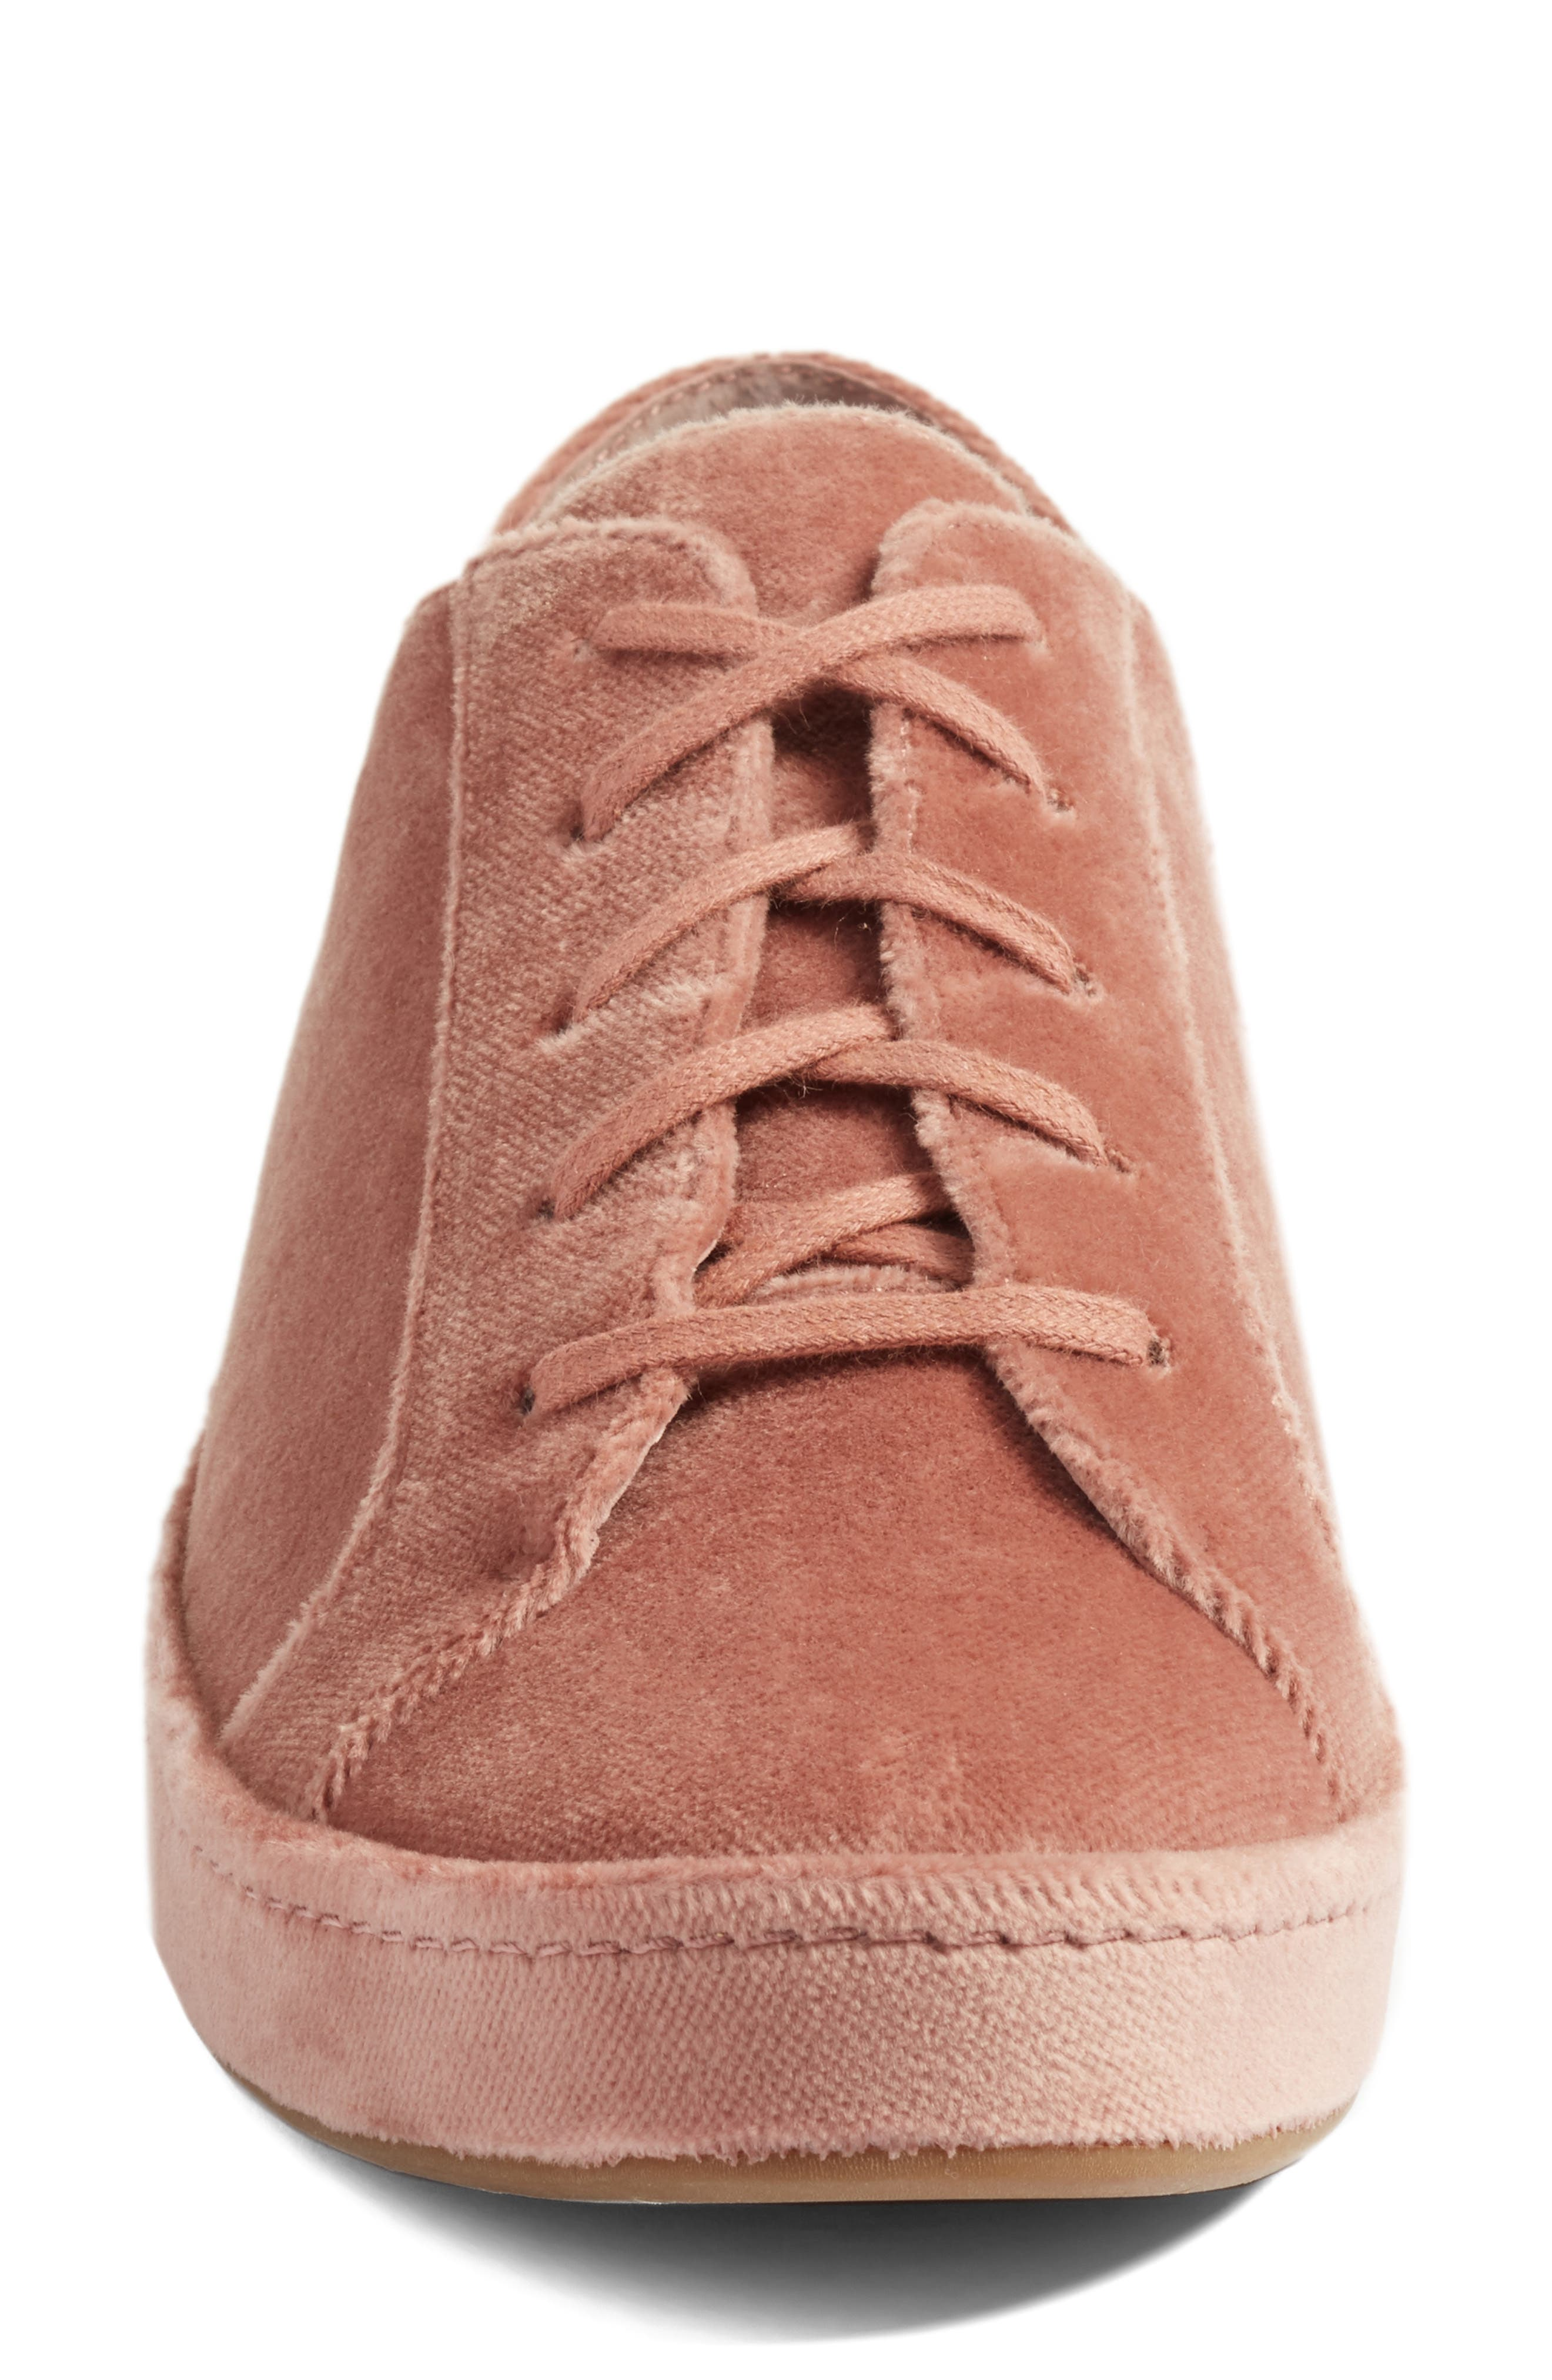 Daryl Low Top Sneaker,                             Alternate thumbnail 4, color,                             Light Mauve